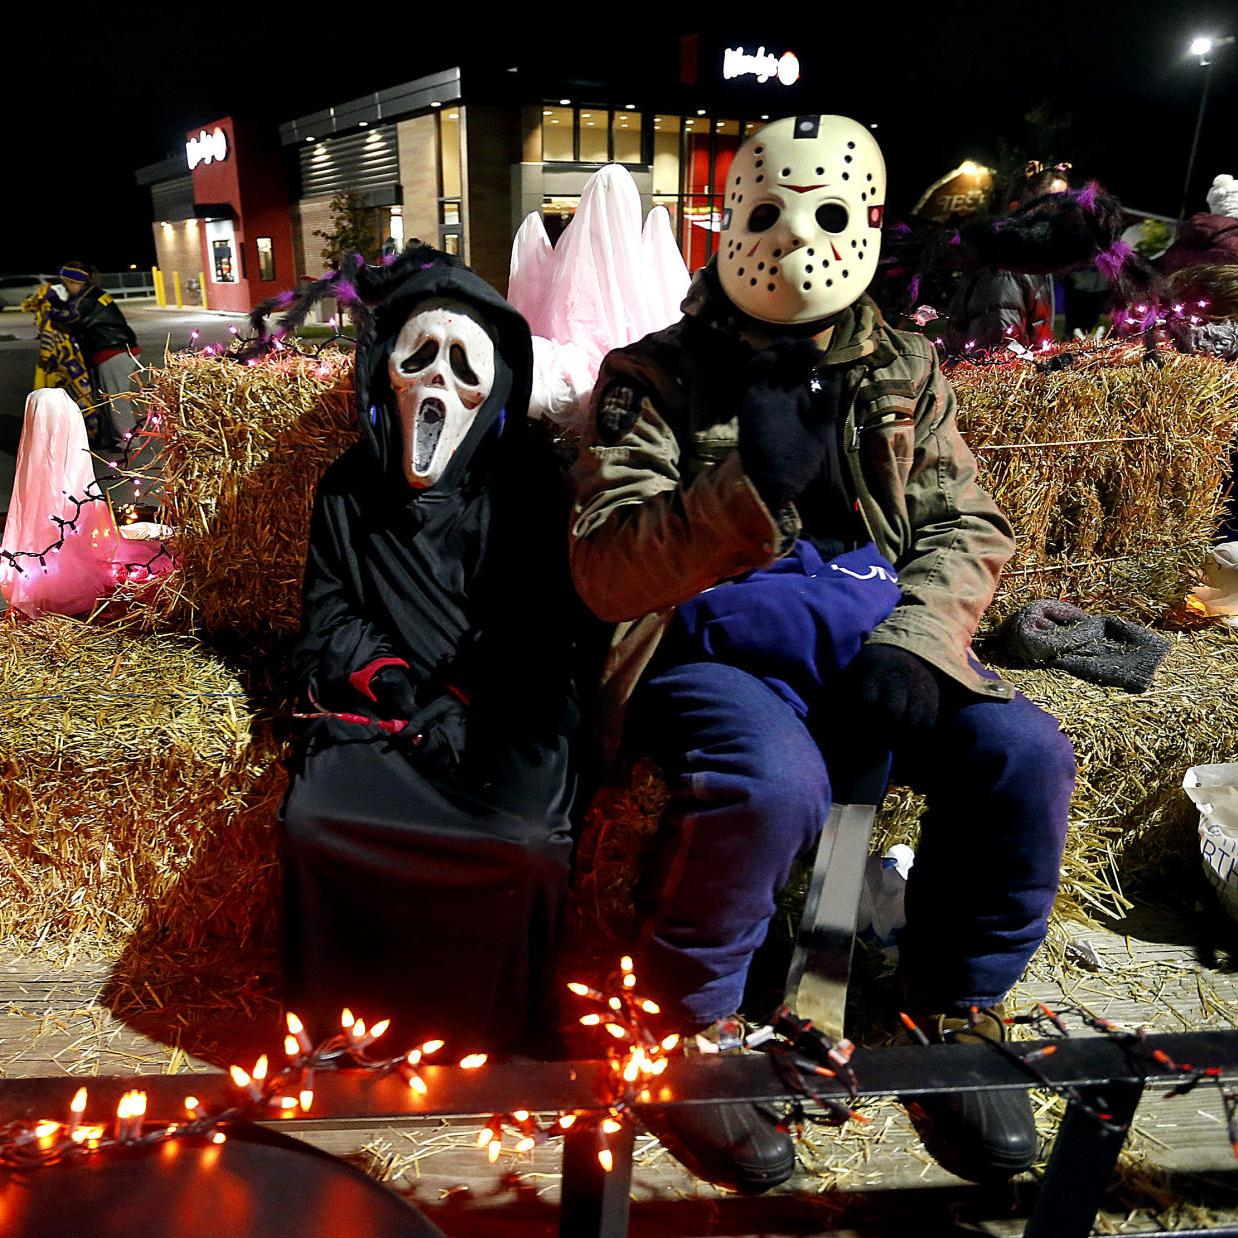 Bettendorf Halloween Parade 2020 Bettendorf Halloween parade set for Saturday | Bettendorf